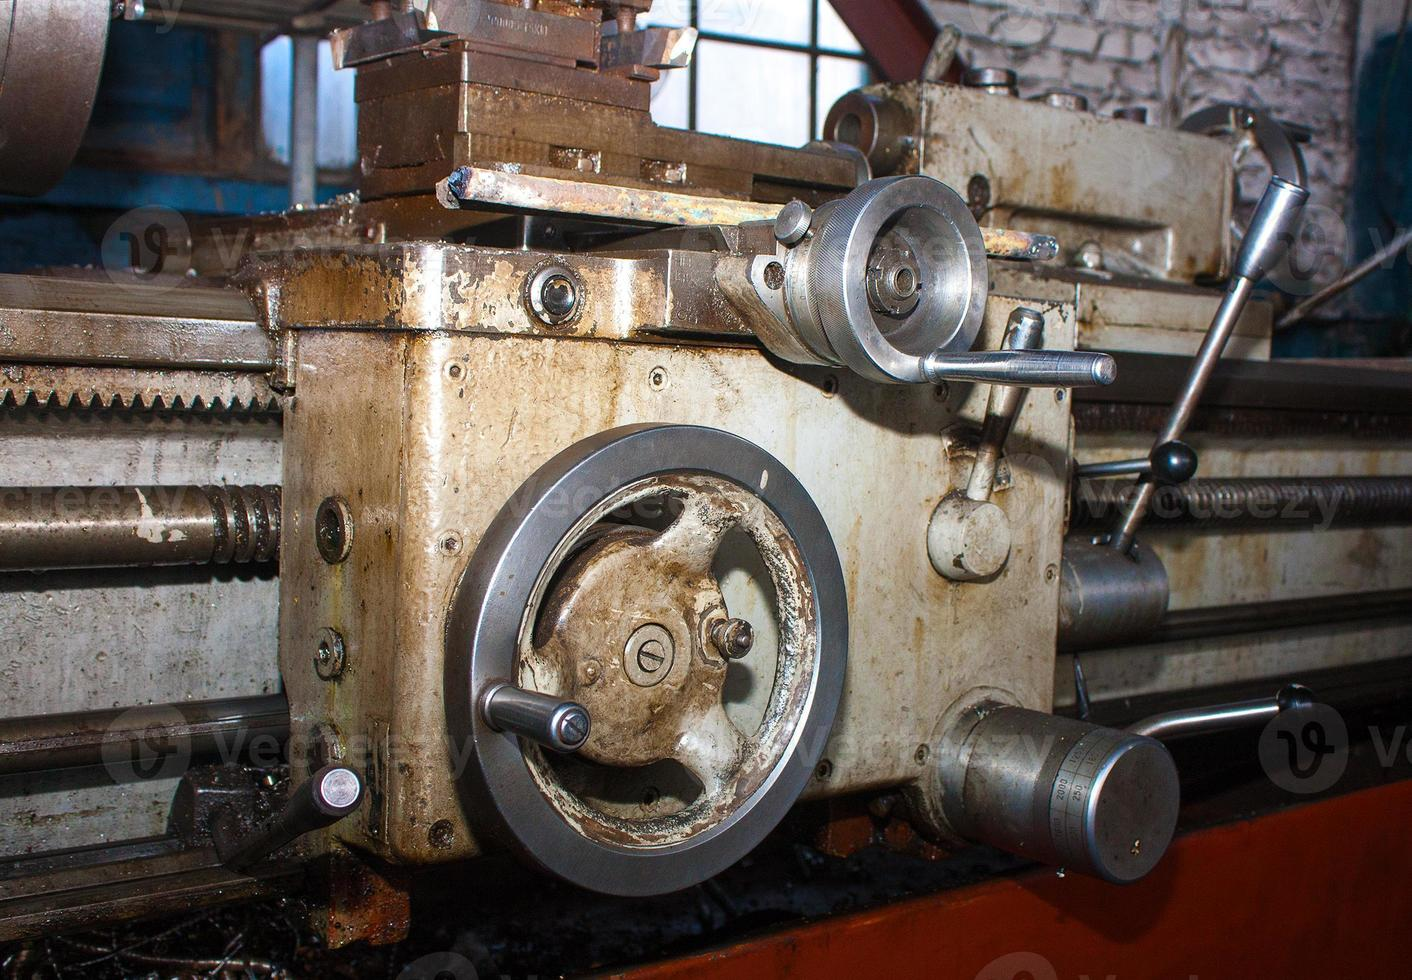 Details and mechanisms of the lathe closeup. Grange photo